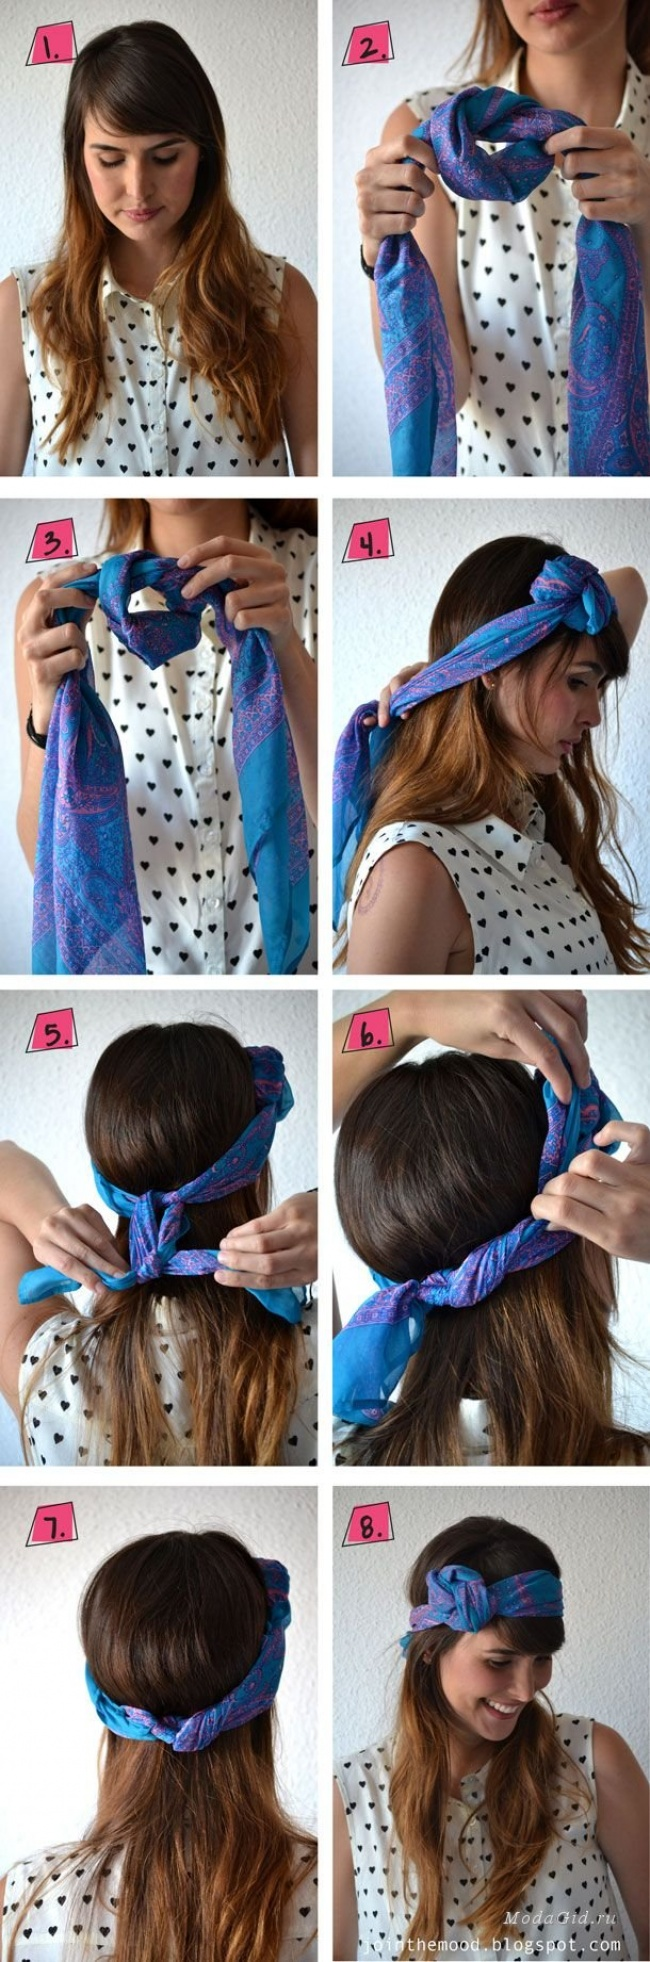 590905-650-1458113671-large_Knotted-Scarf-Hairband